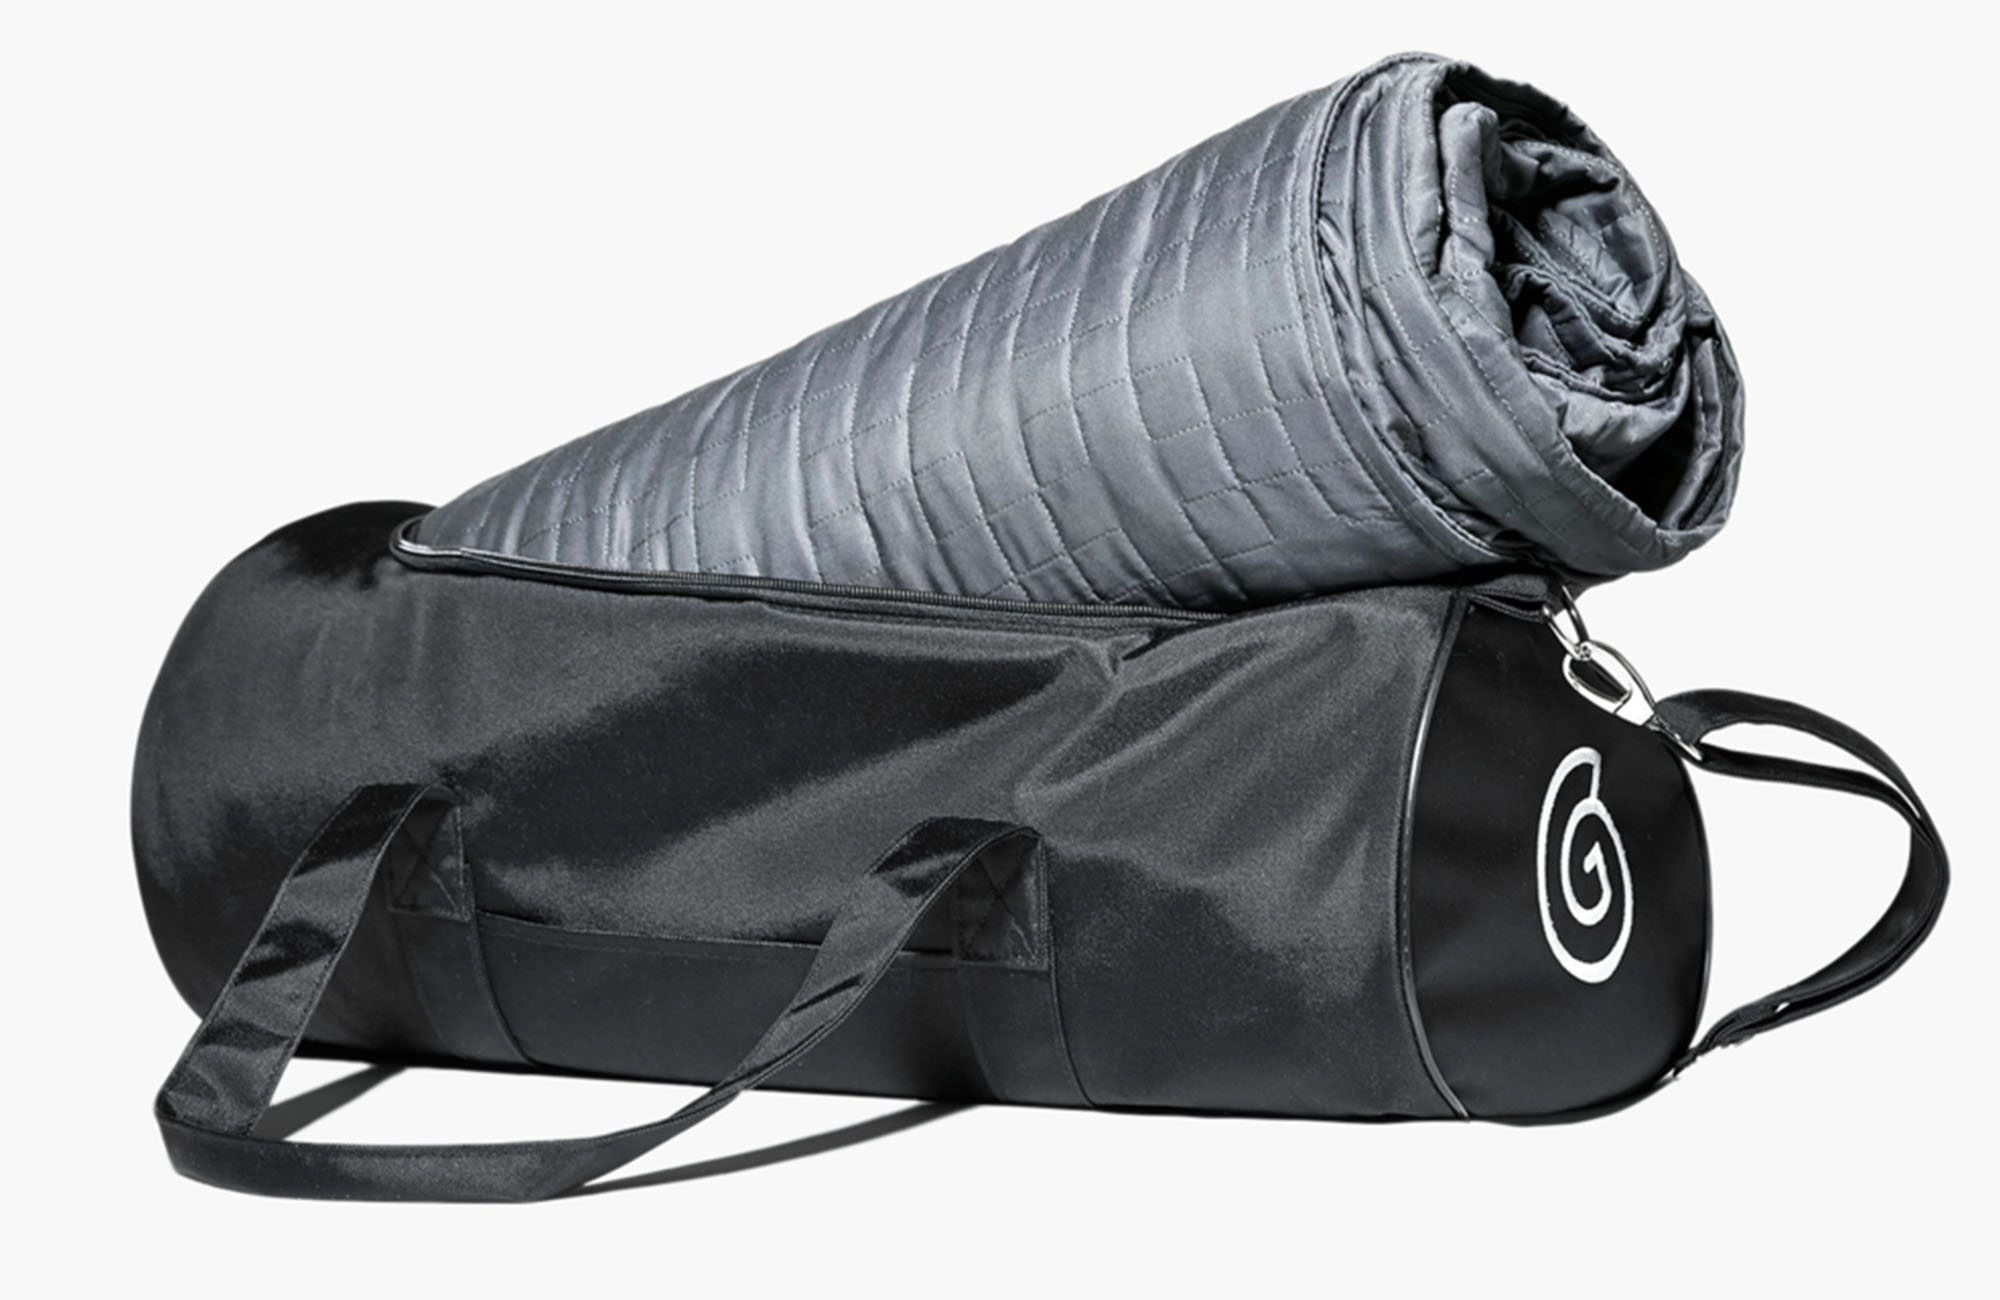 Gravity Travel Weighted Blanket